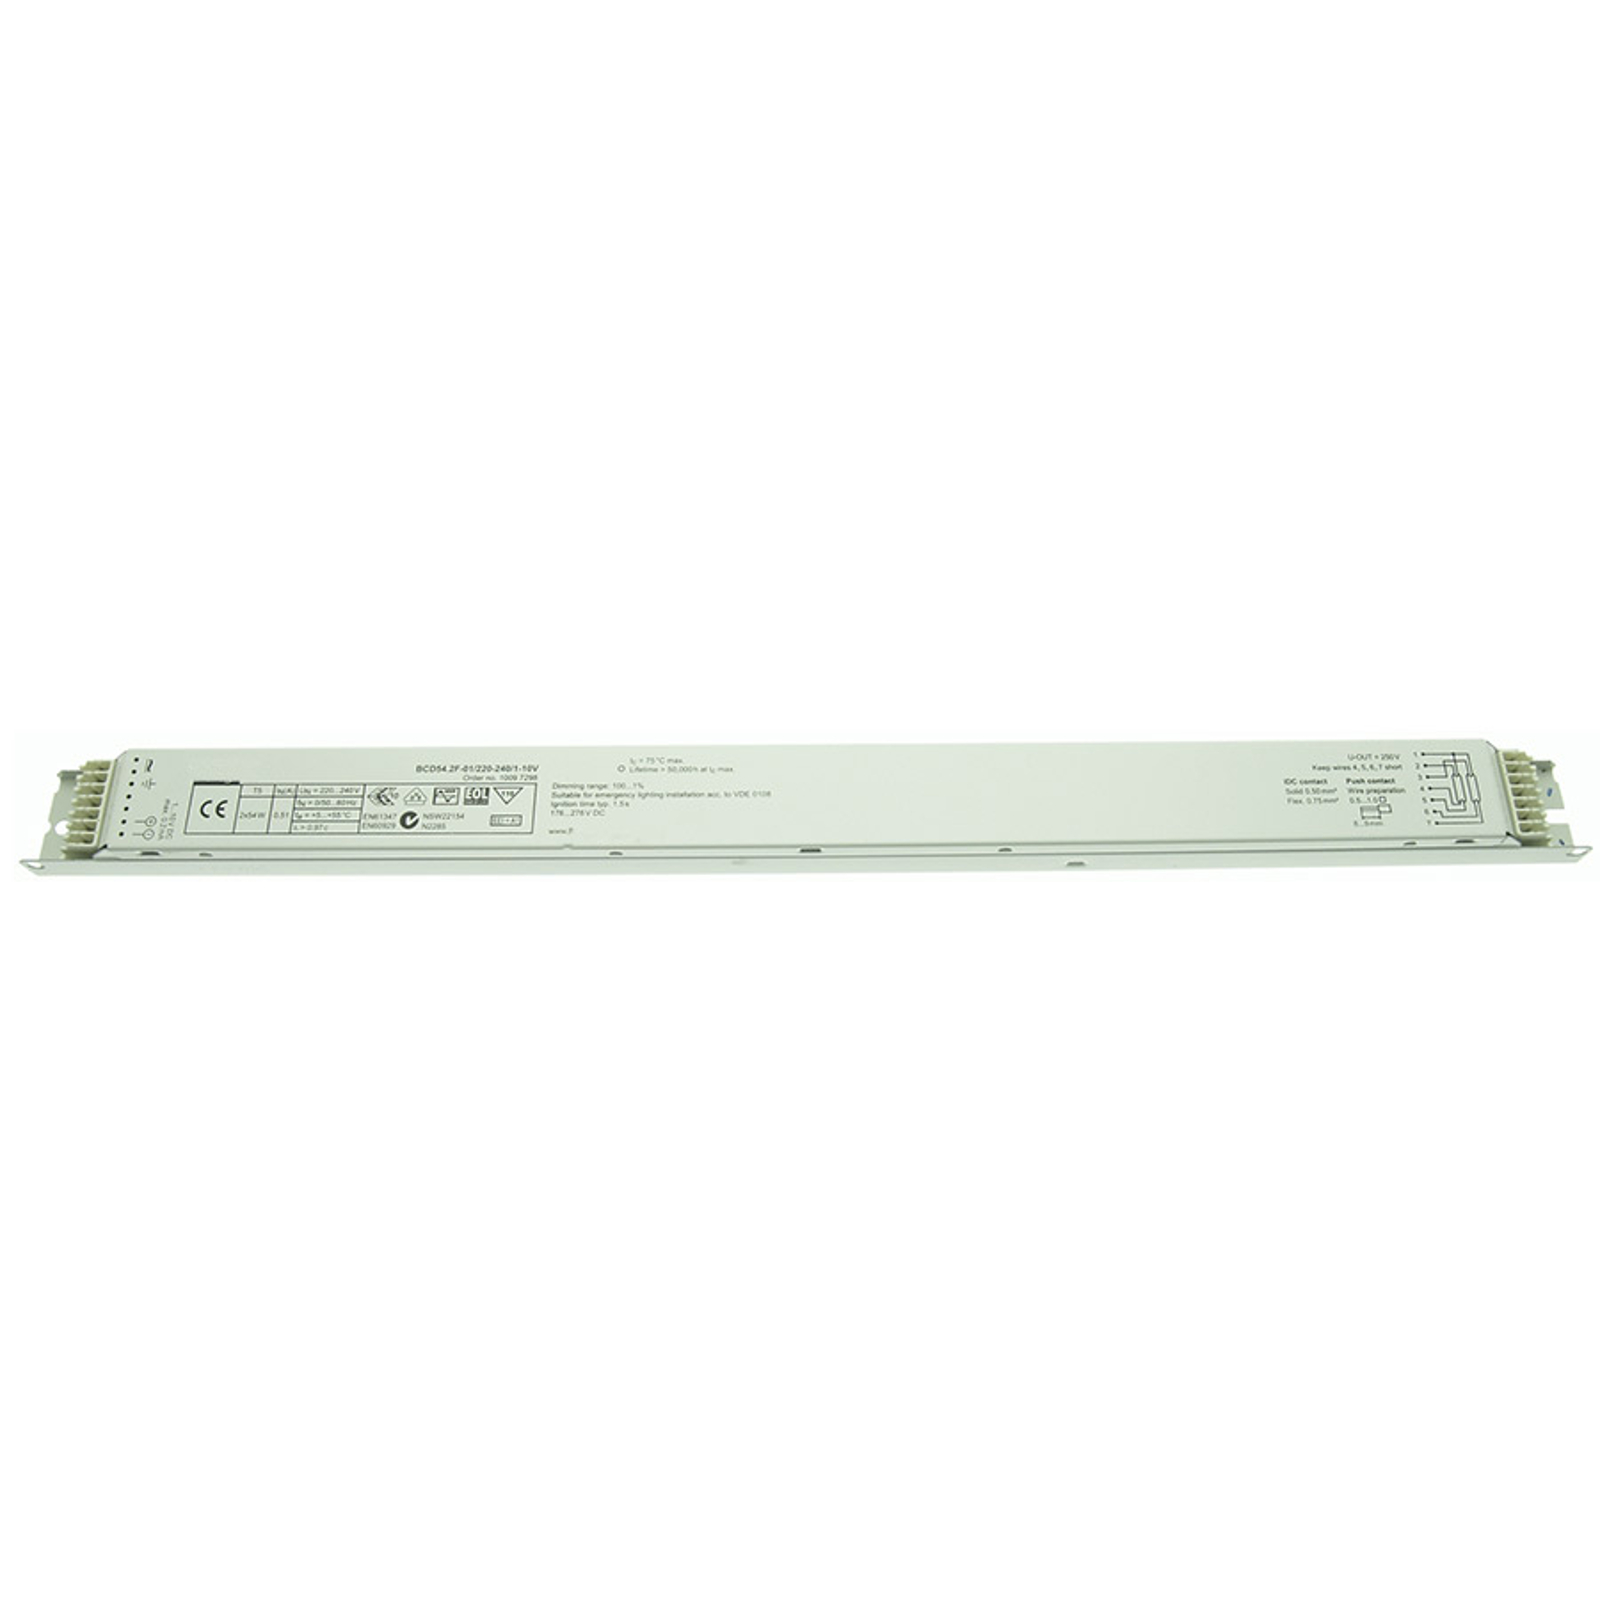 BE dimmable 2 x 54W T5 BCD54.2F-01/220-240/1-10V